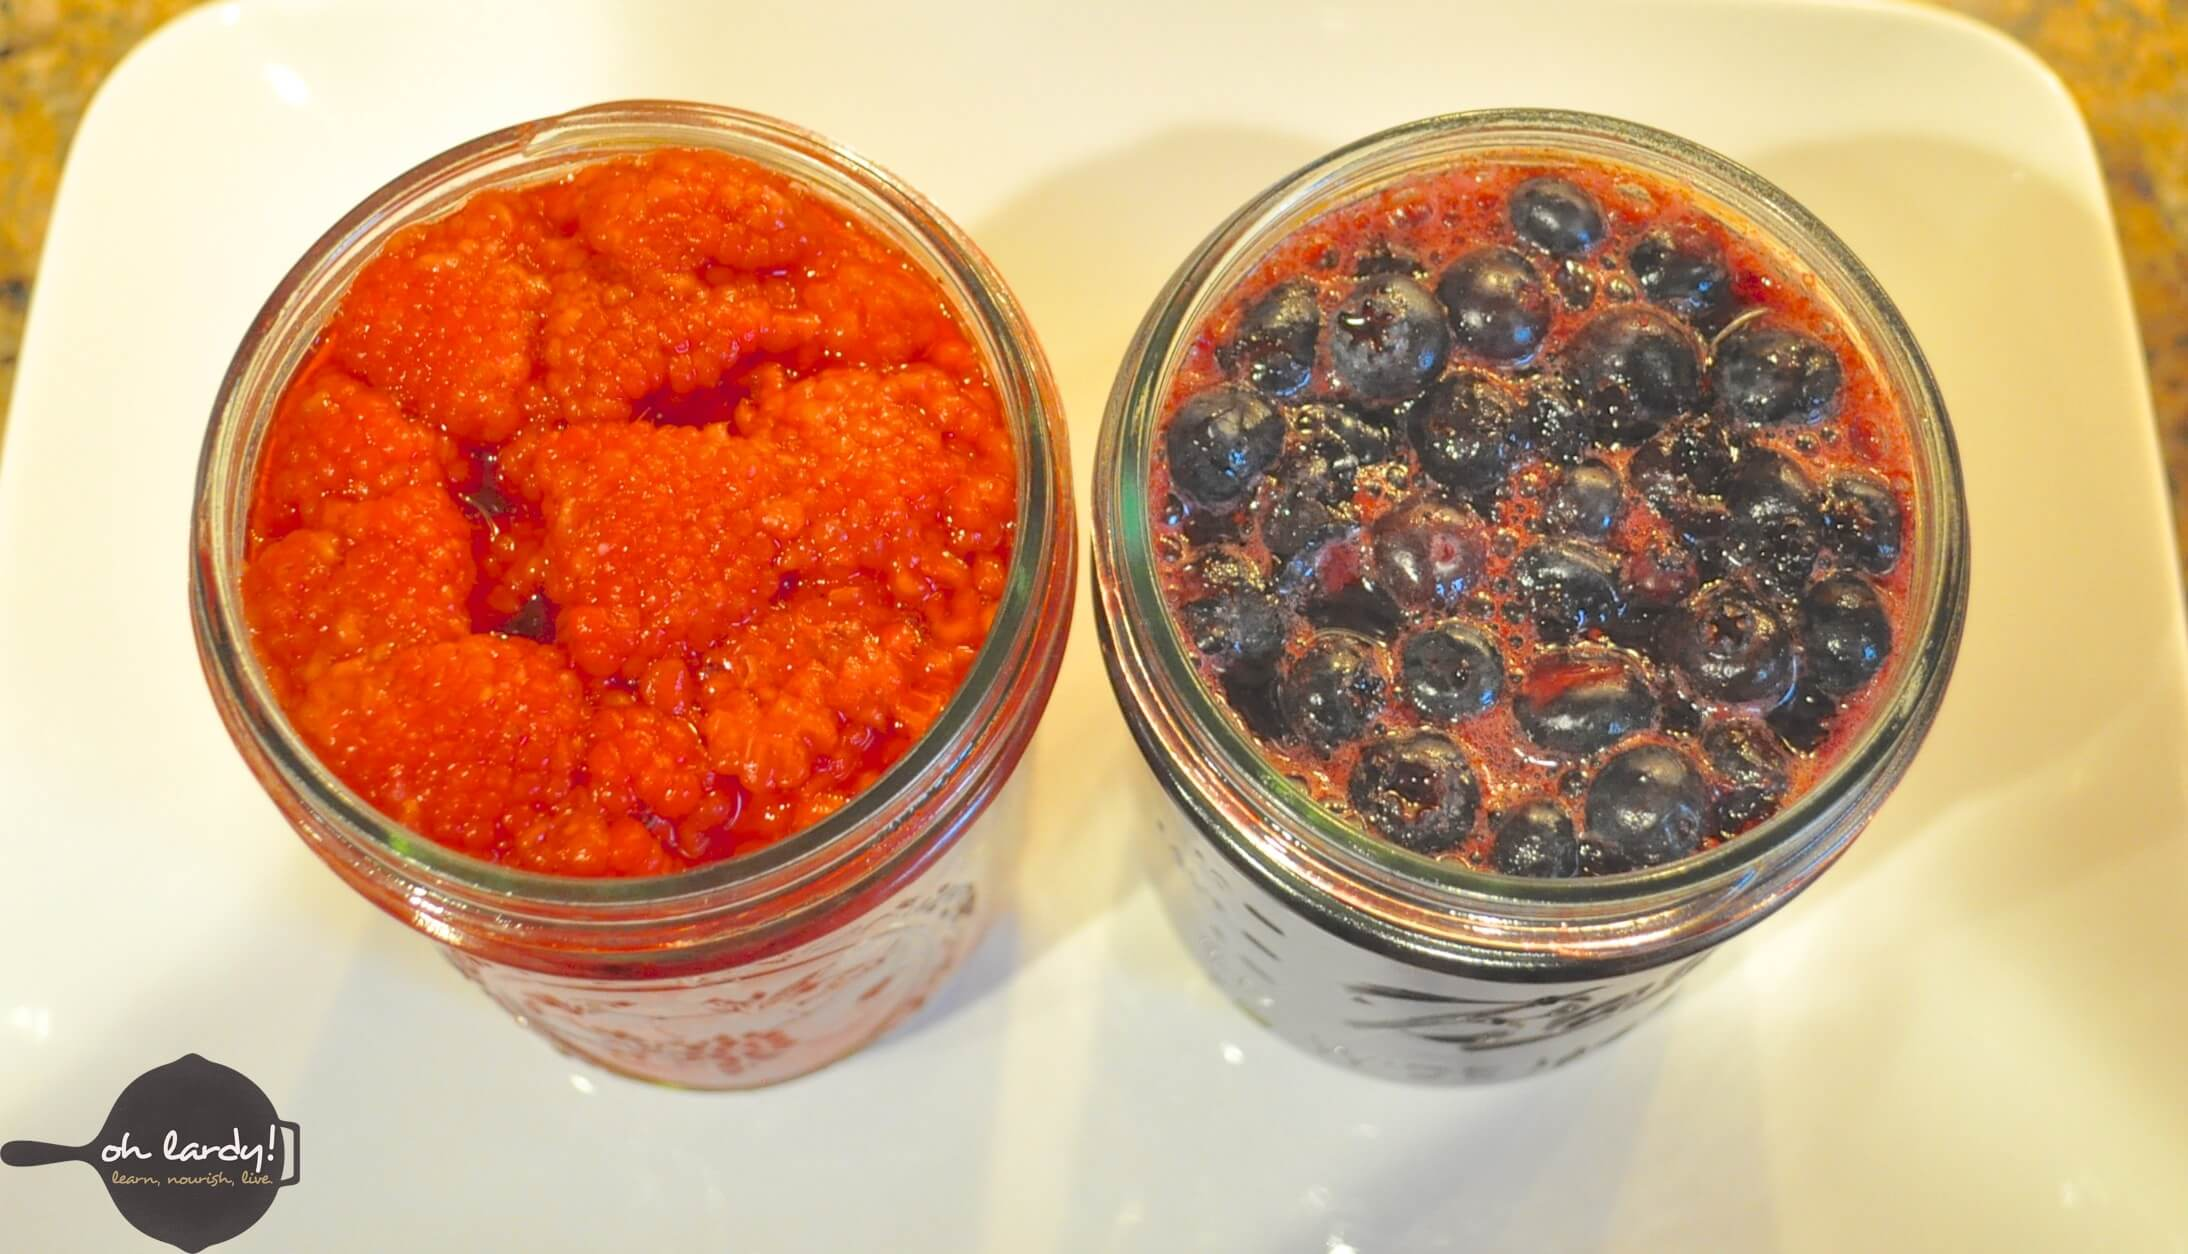 Lacto-fermented raspberries and blueberries